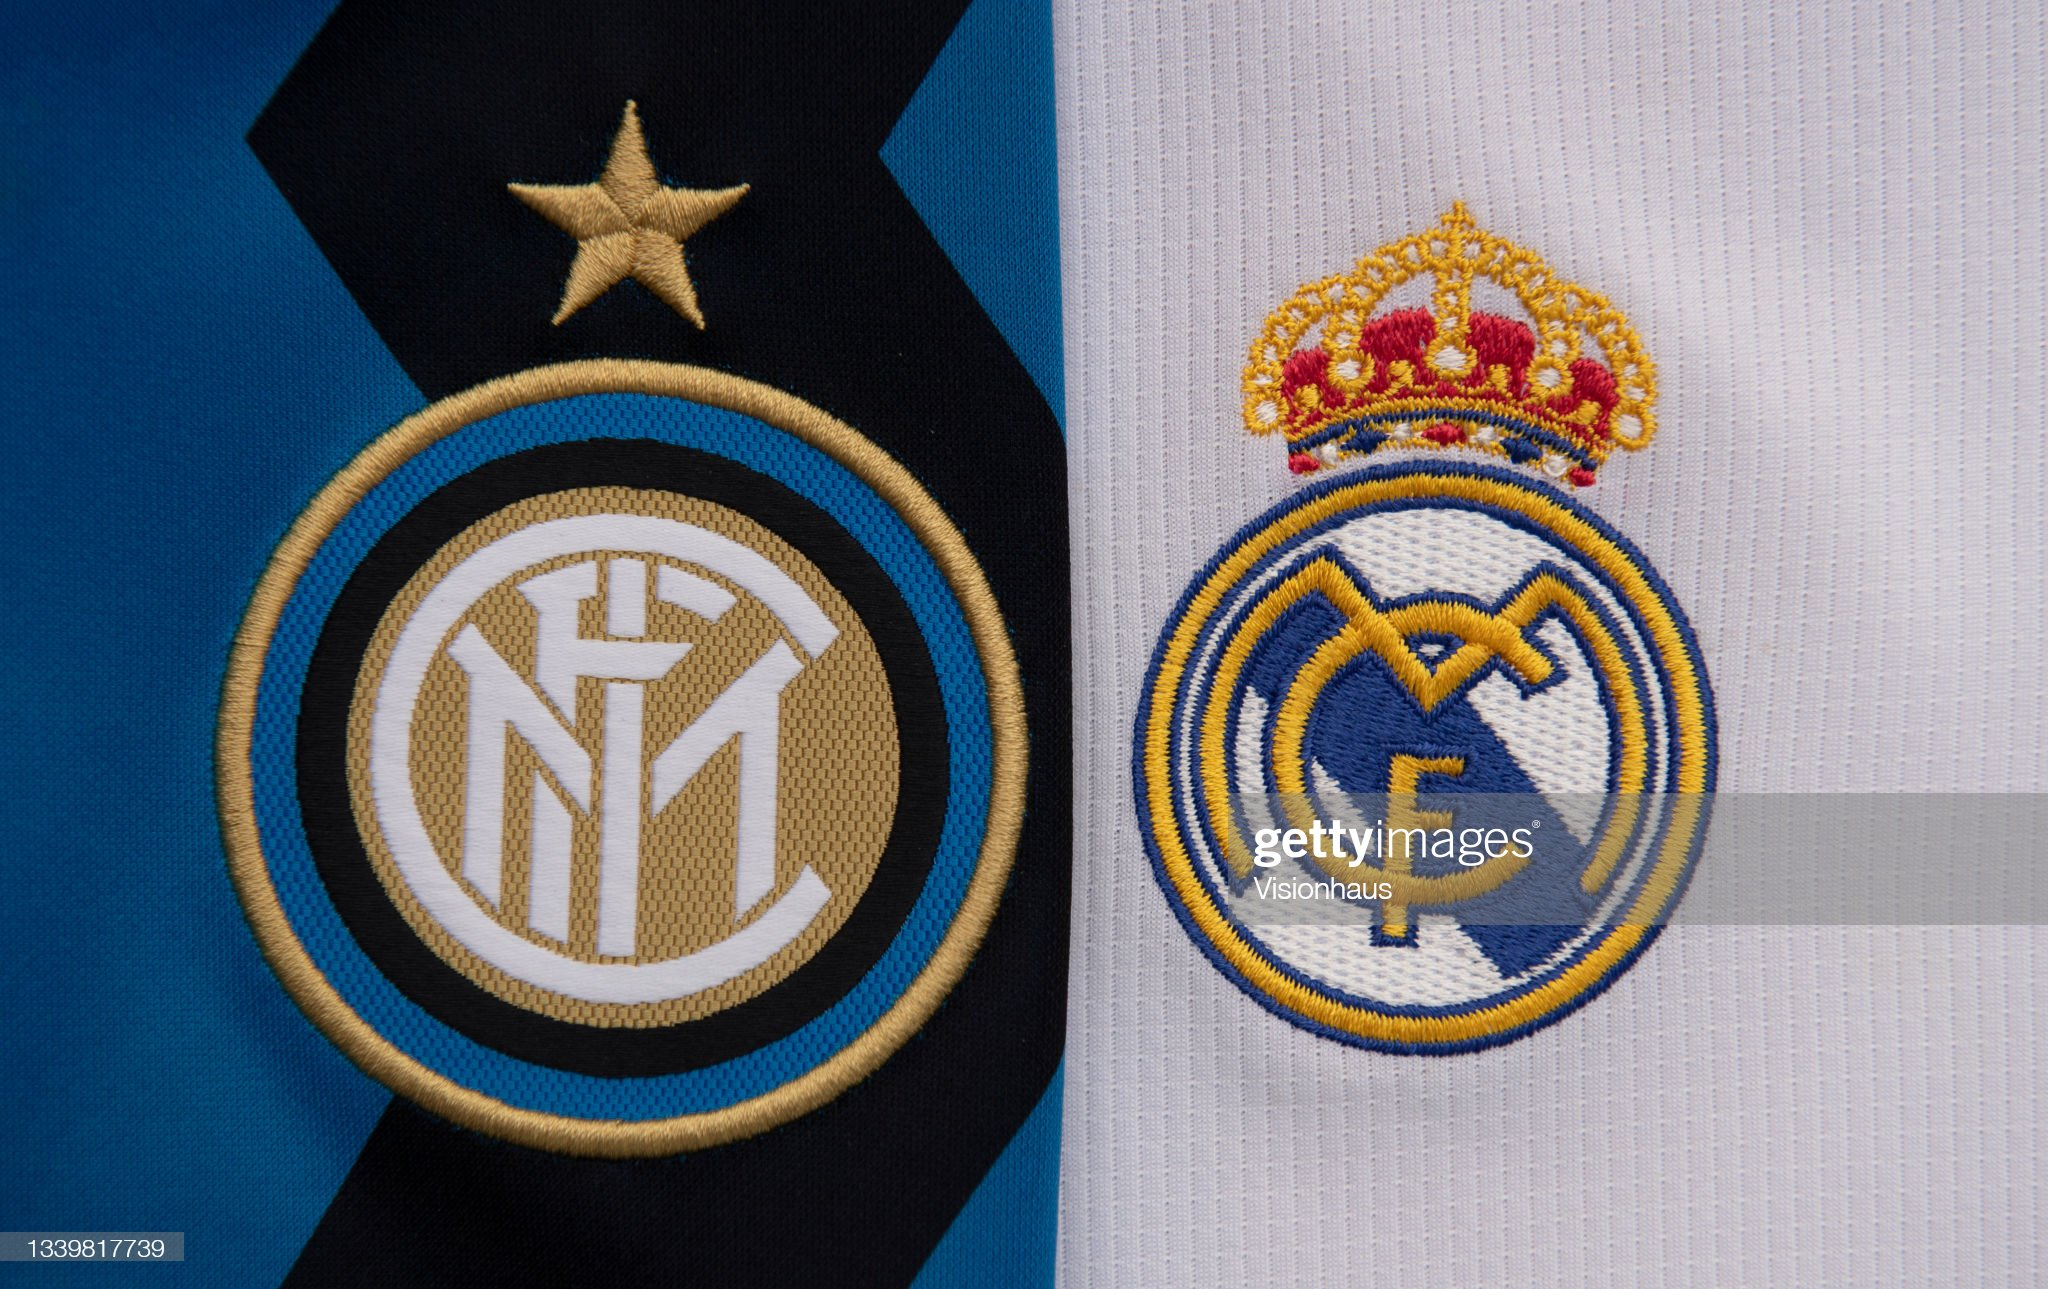 Inter vs Real Madrid Preview, prediction and odds